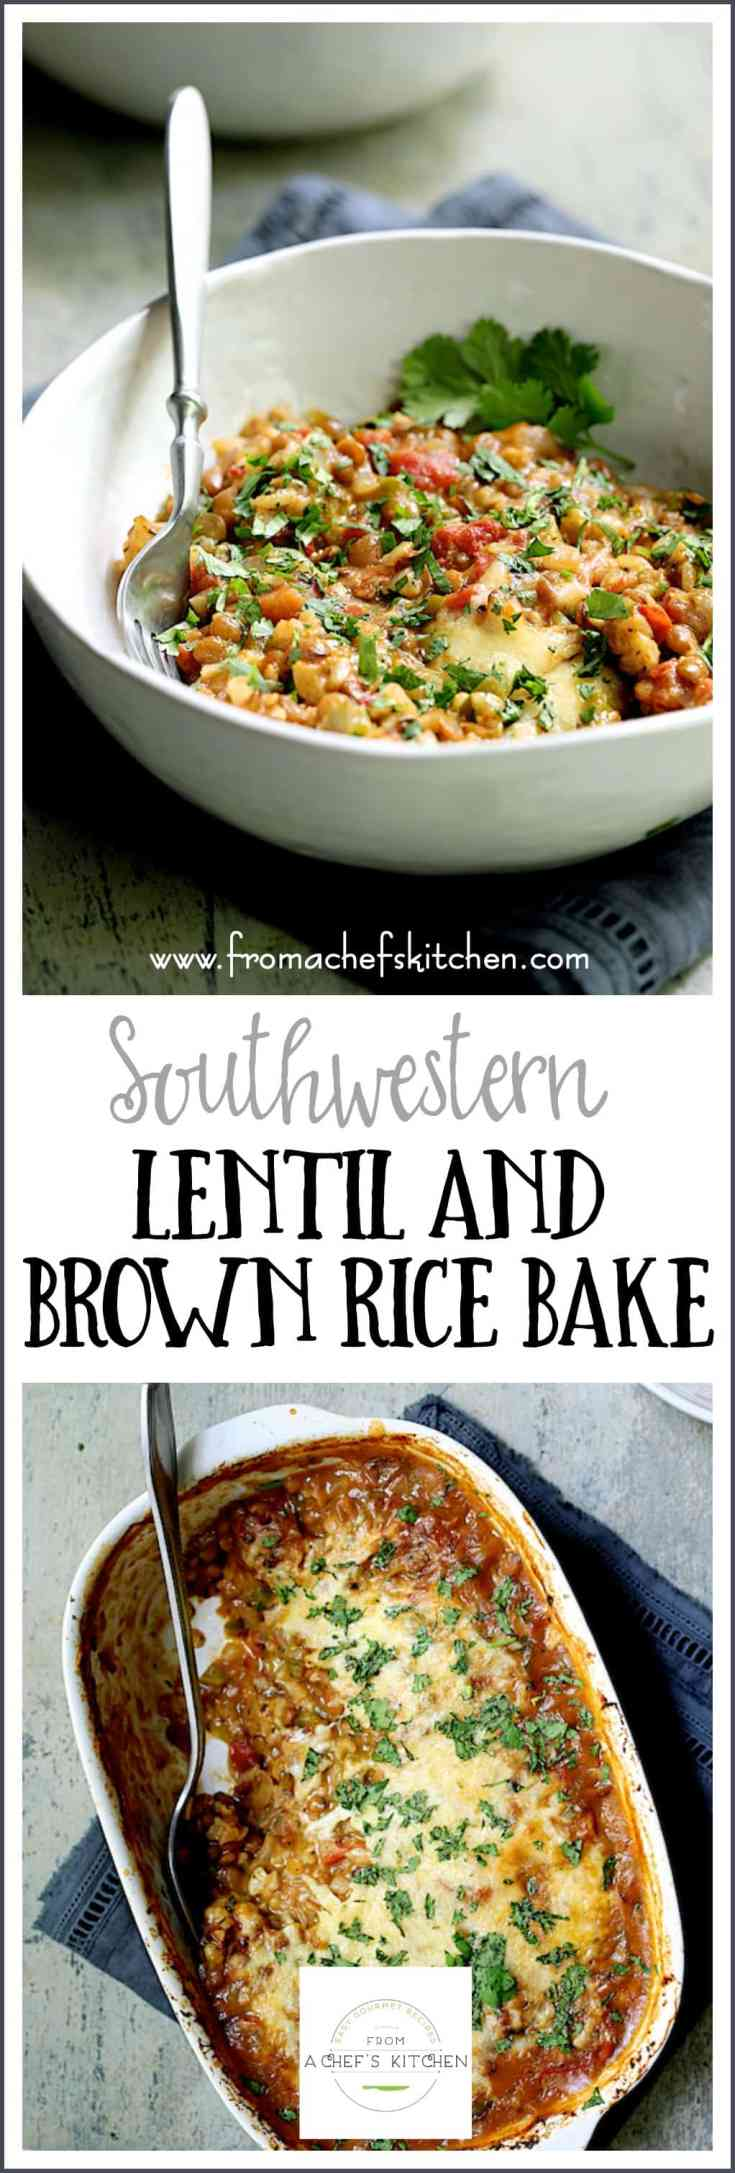 Southwestern Lentil and Brown Rice Bake is cheesy, delicious meatless comfort food even a carnivore will love and is super easy to prepare!  Simply combine everything in a baking dish, pop it in the oven and let it bake away while you do other things. #vegetarian #southwestern #Mexican #lentil #brownrice